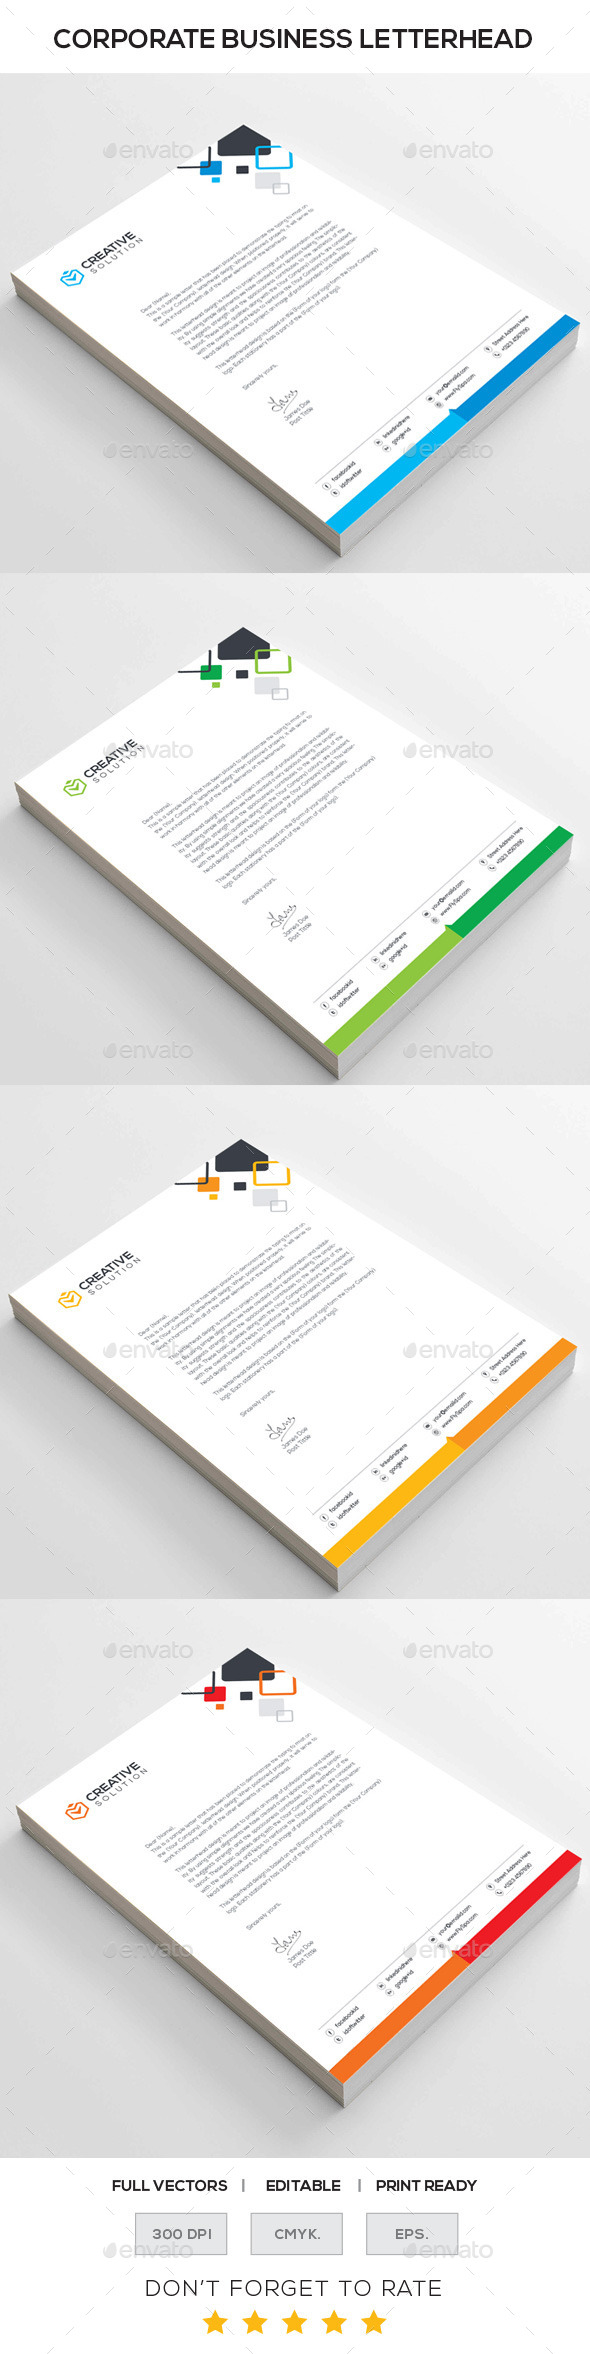 GraphicRiver CREATIVE SOLUTION Corporate Letterhead 10985202